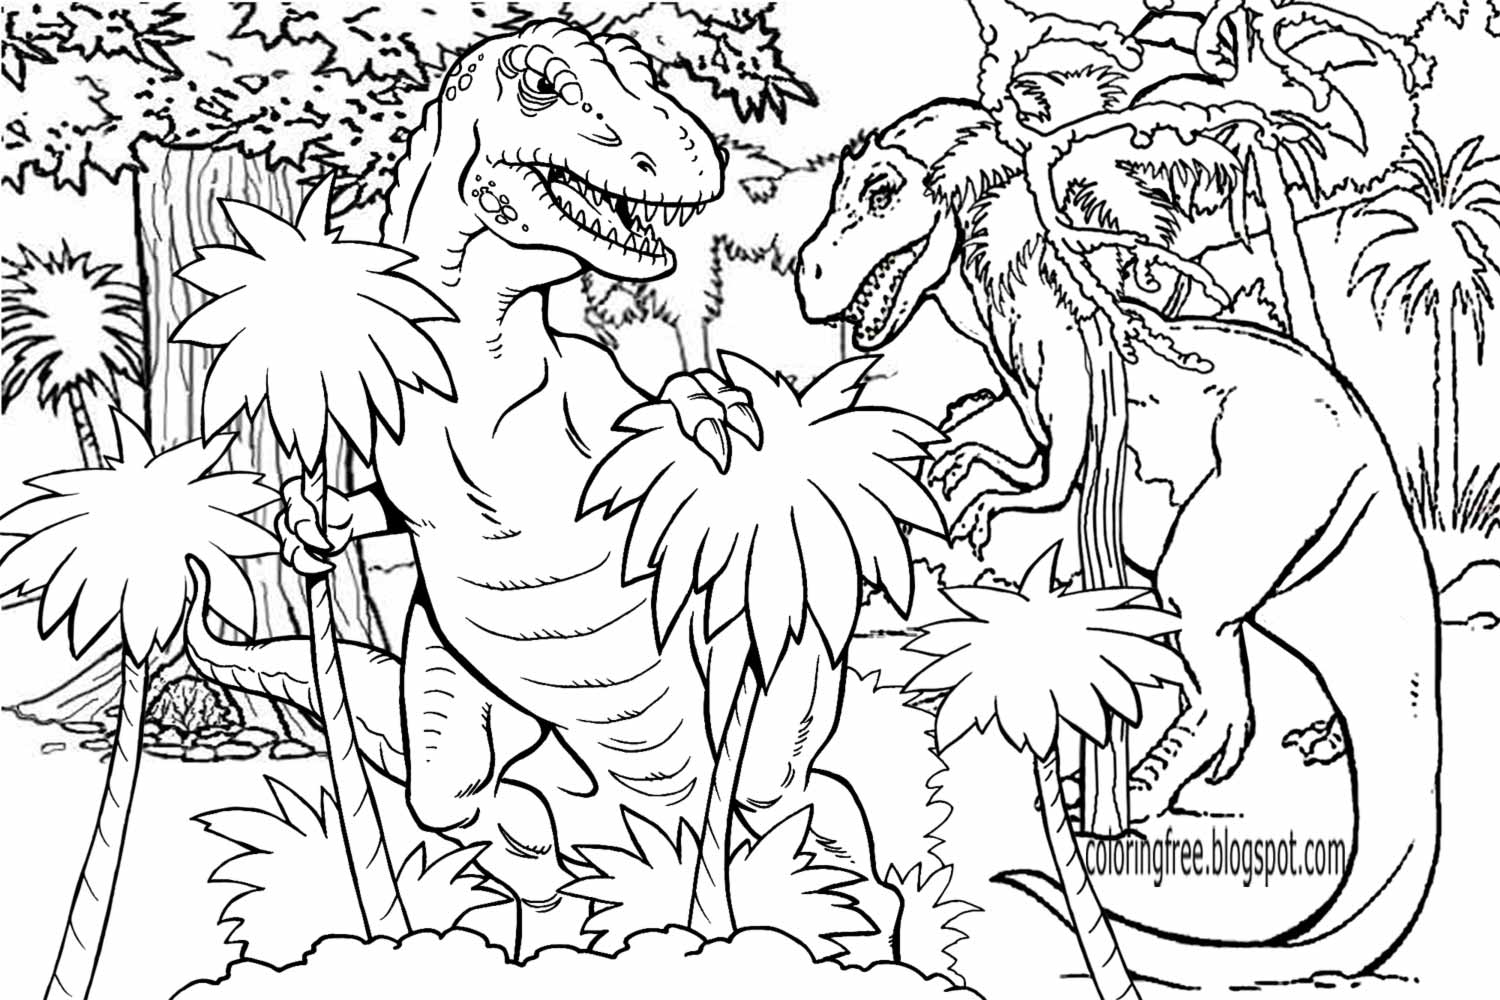 dinosaurs printable coloring pages lets coloring book prehistoric jurassic world dinosaurs dinosaurs coloring printable pages